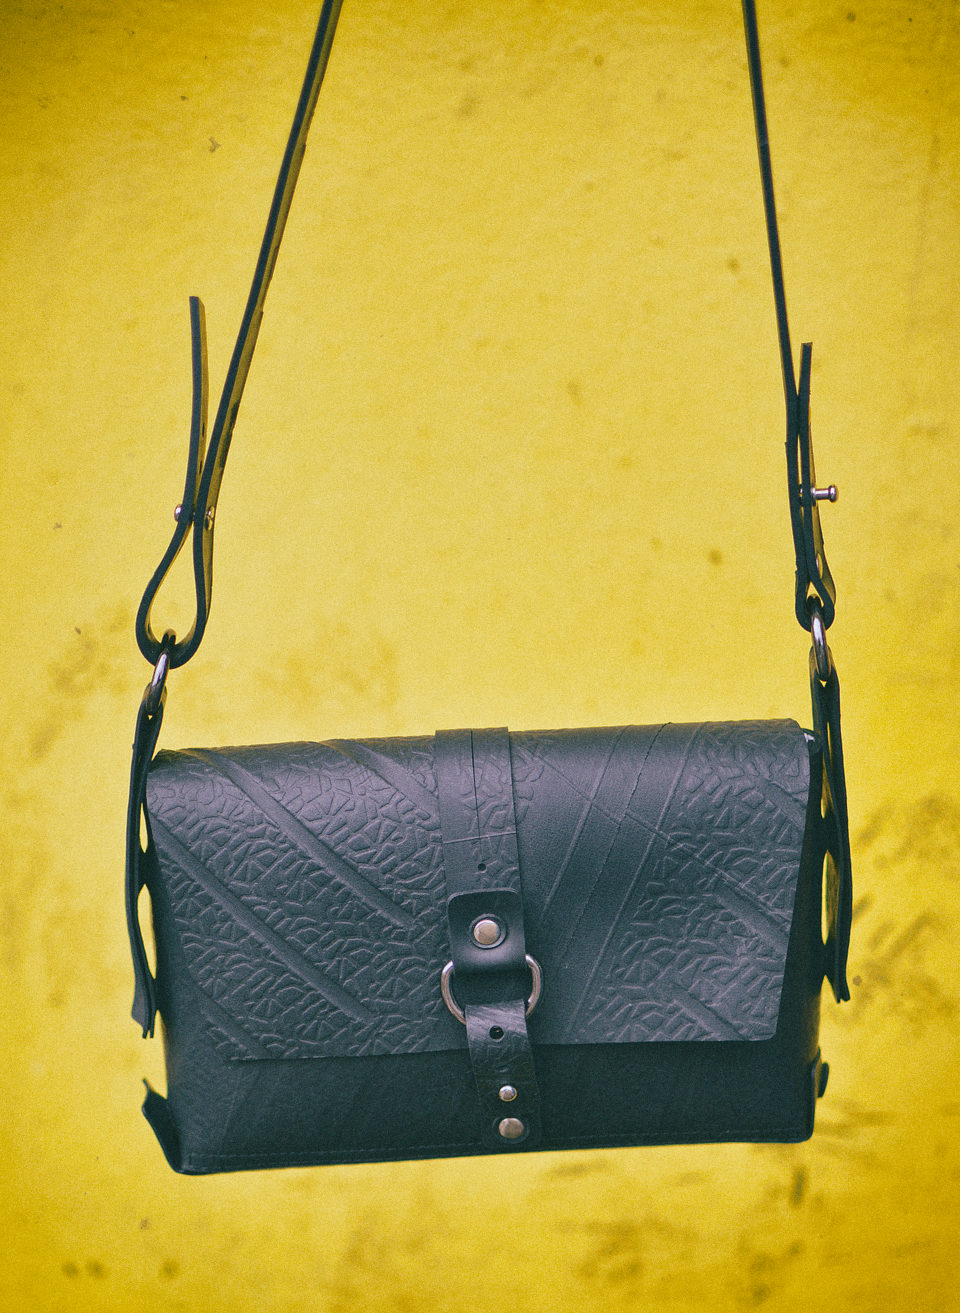 sustainable vegan leather alternatives - paguro upcycle rubber handbag